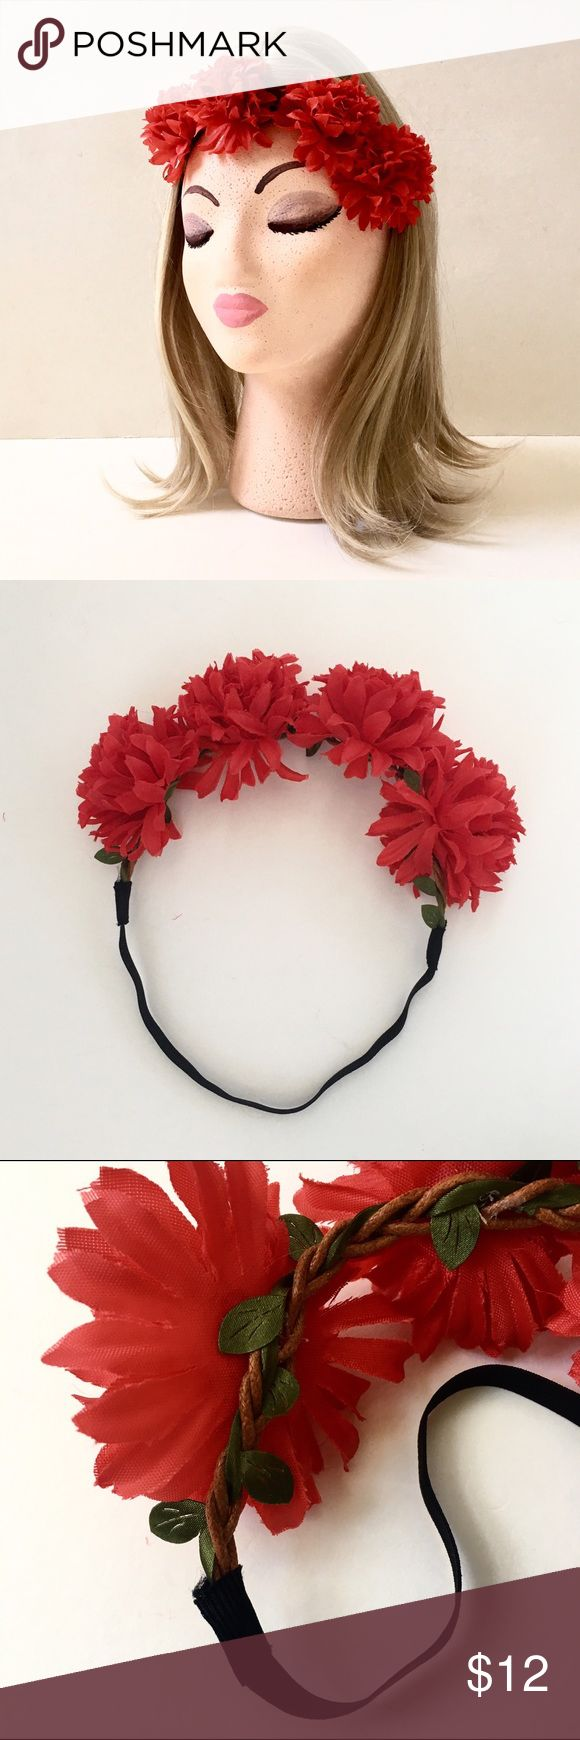 """Garland of 4 Silky Mum Blooms Upon an Elastic Band True red. Approx. 18.5"""" around. Only the black band portion stretches. Cluster of flowers all together measure approx. 8 x 2 3/4"""". Standard teen/woman size. Cute for The 4th of July❤️ NWT. Accessories Hair Accessories"""